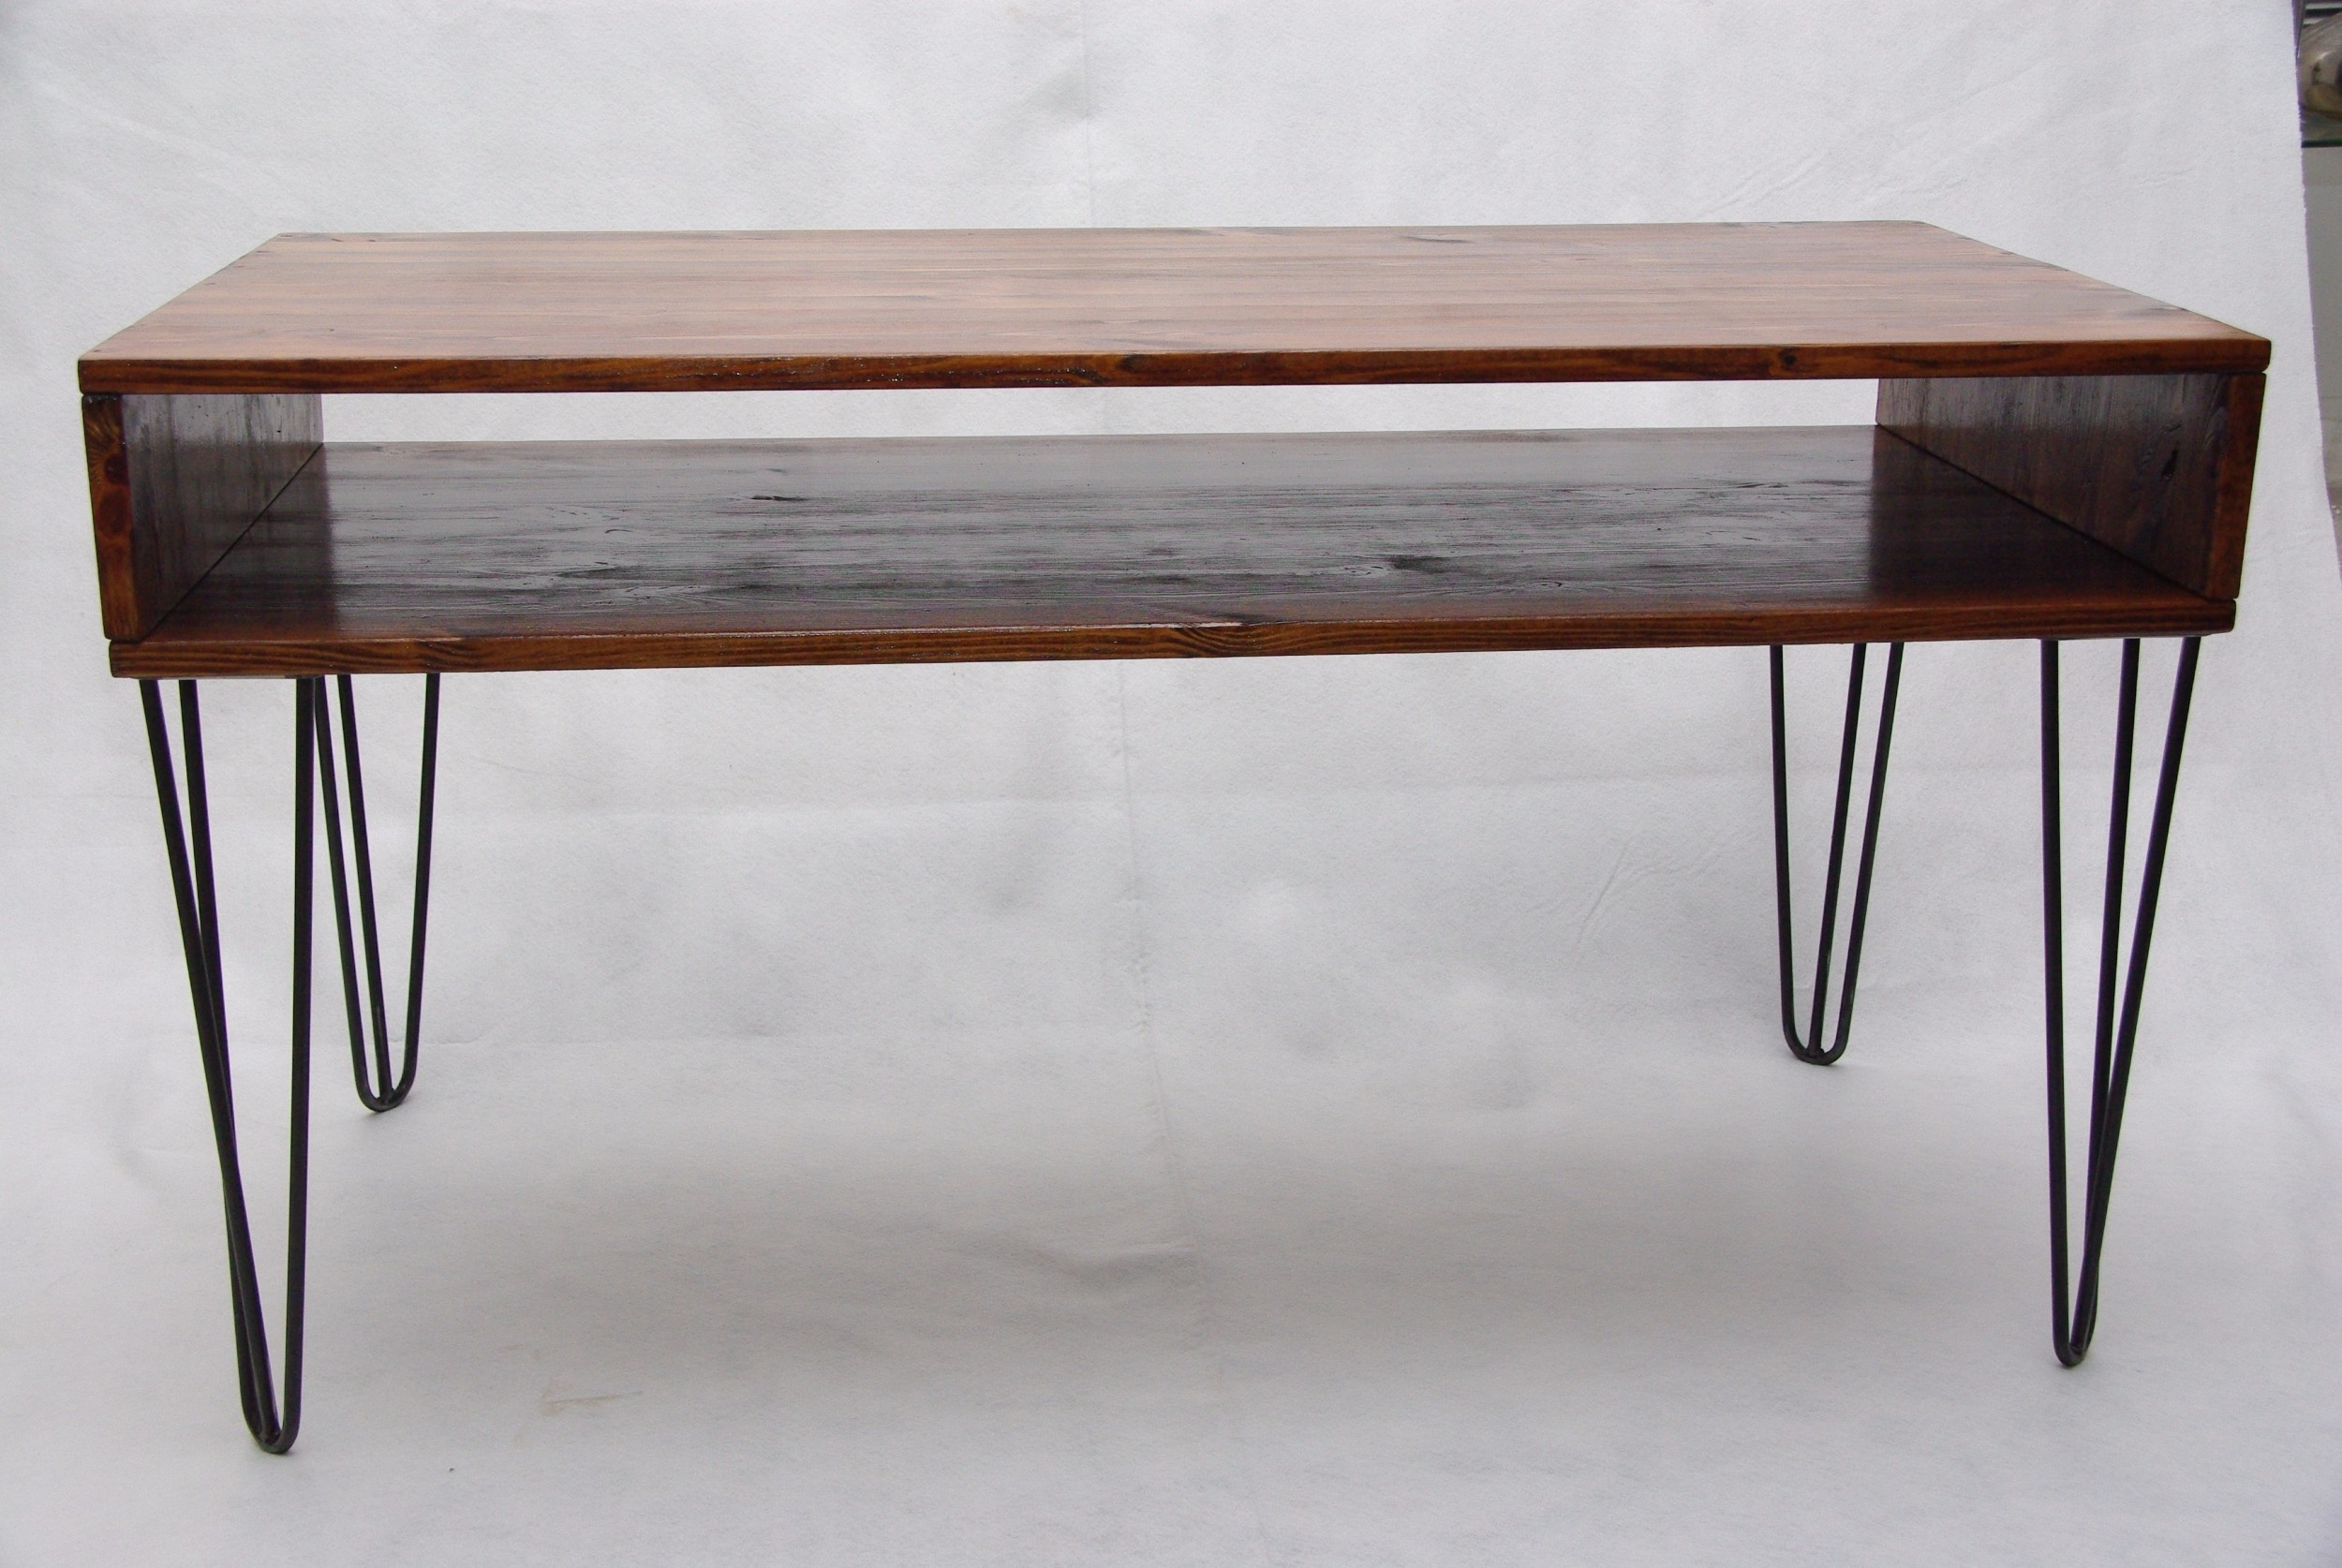 Table basse scandinave en bois massif sur hairpin legs for Table esprit scandinave